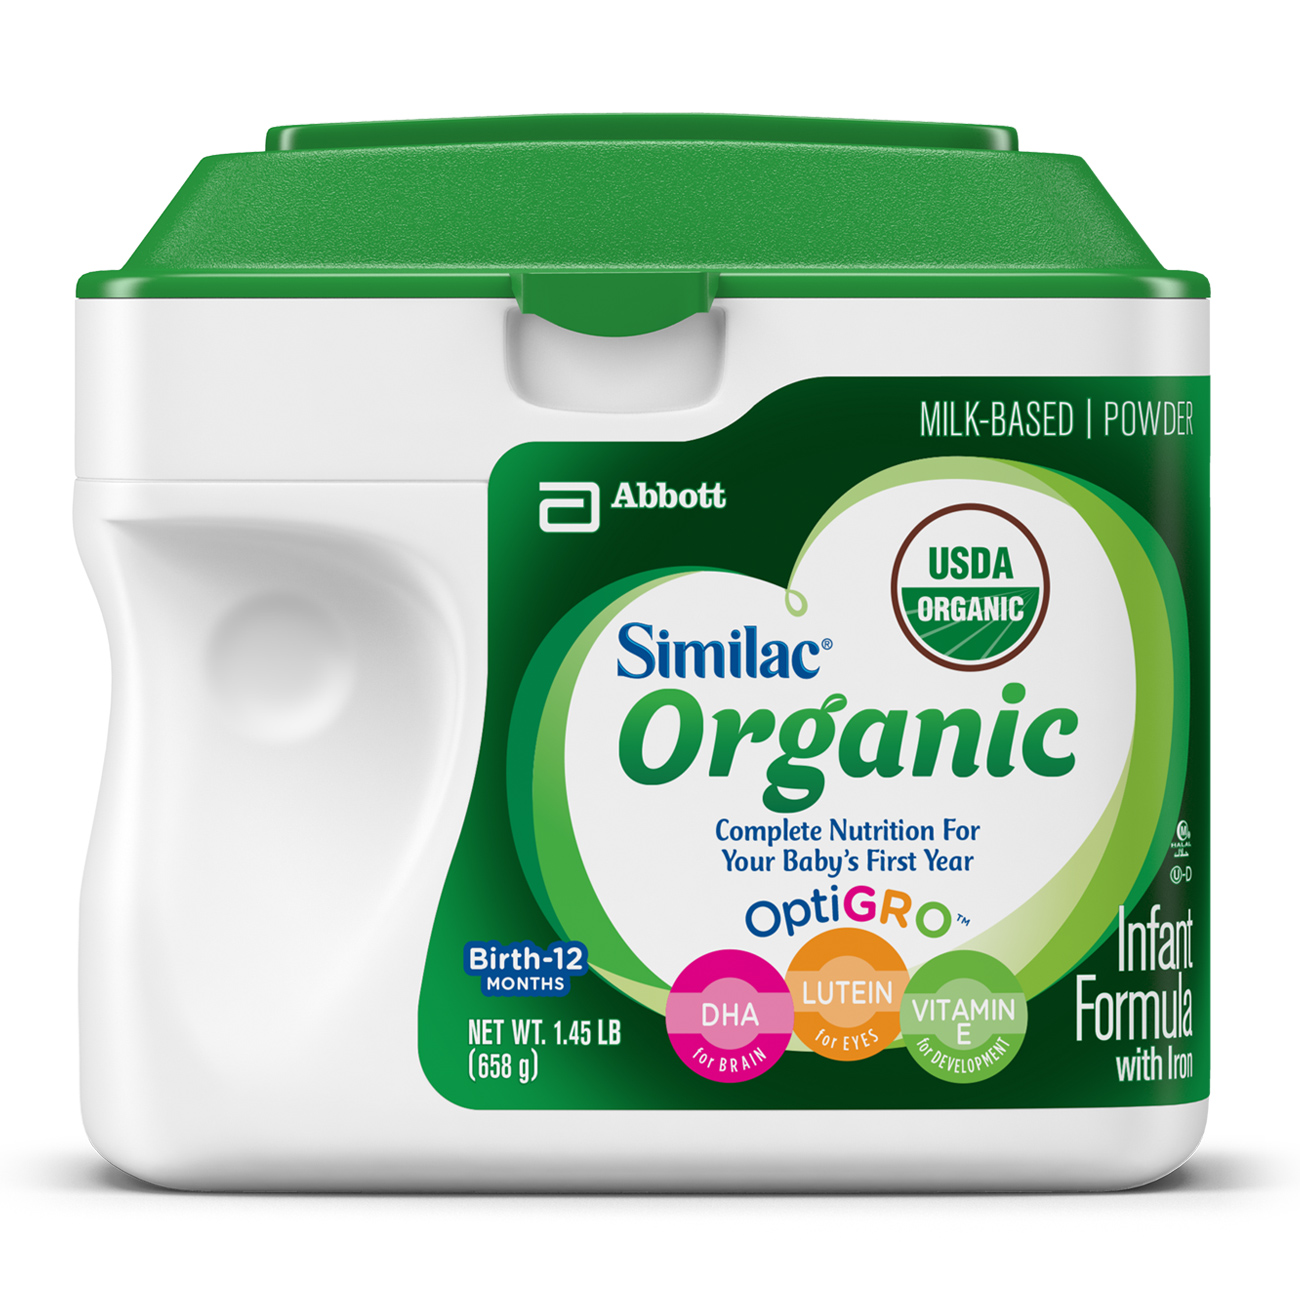 Similac Organic NON-GMO Infant Formula with Iron, Powder, 1.45 lb